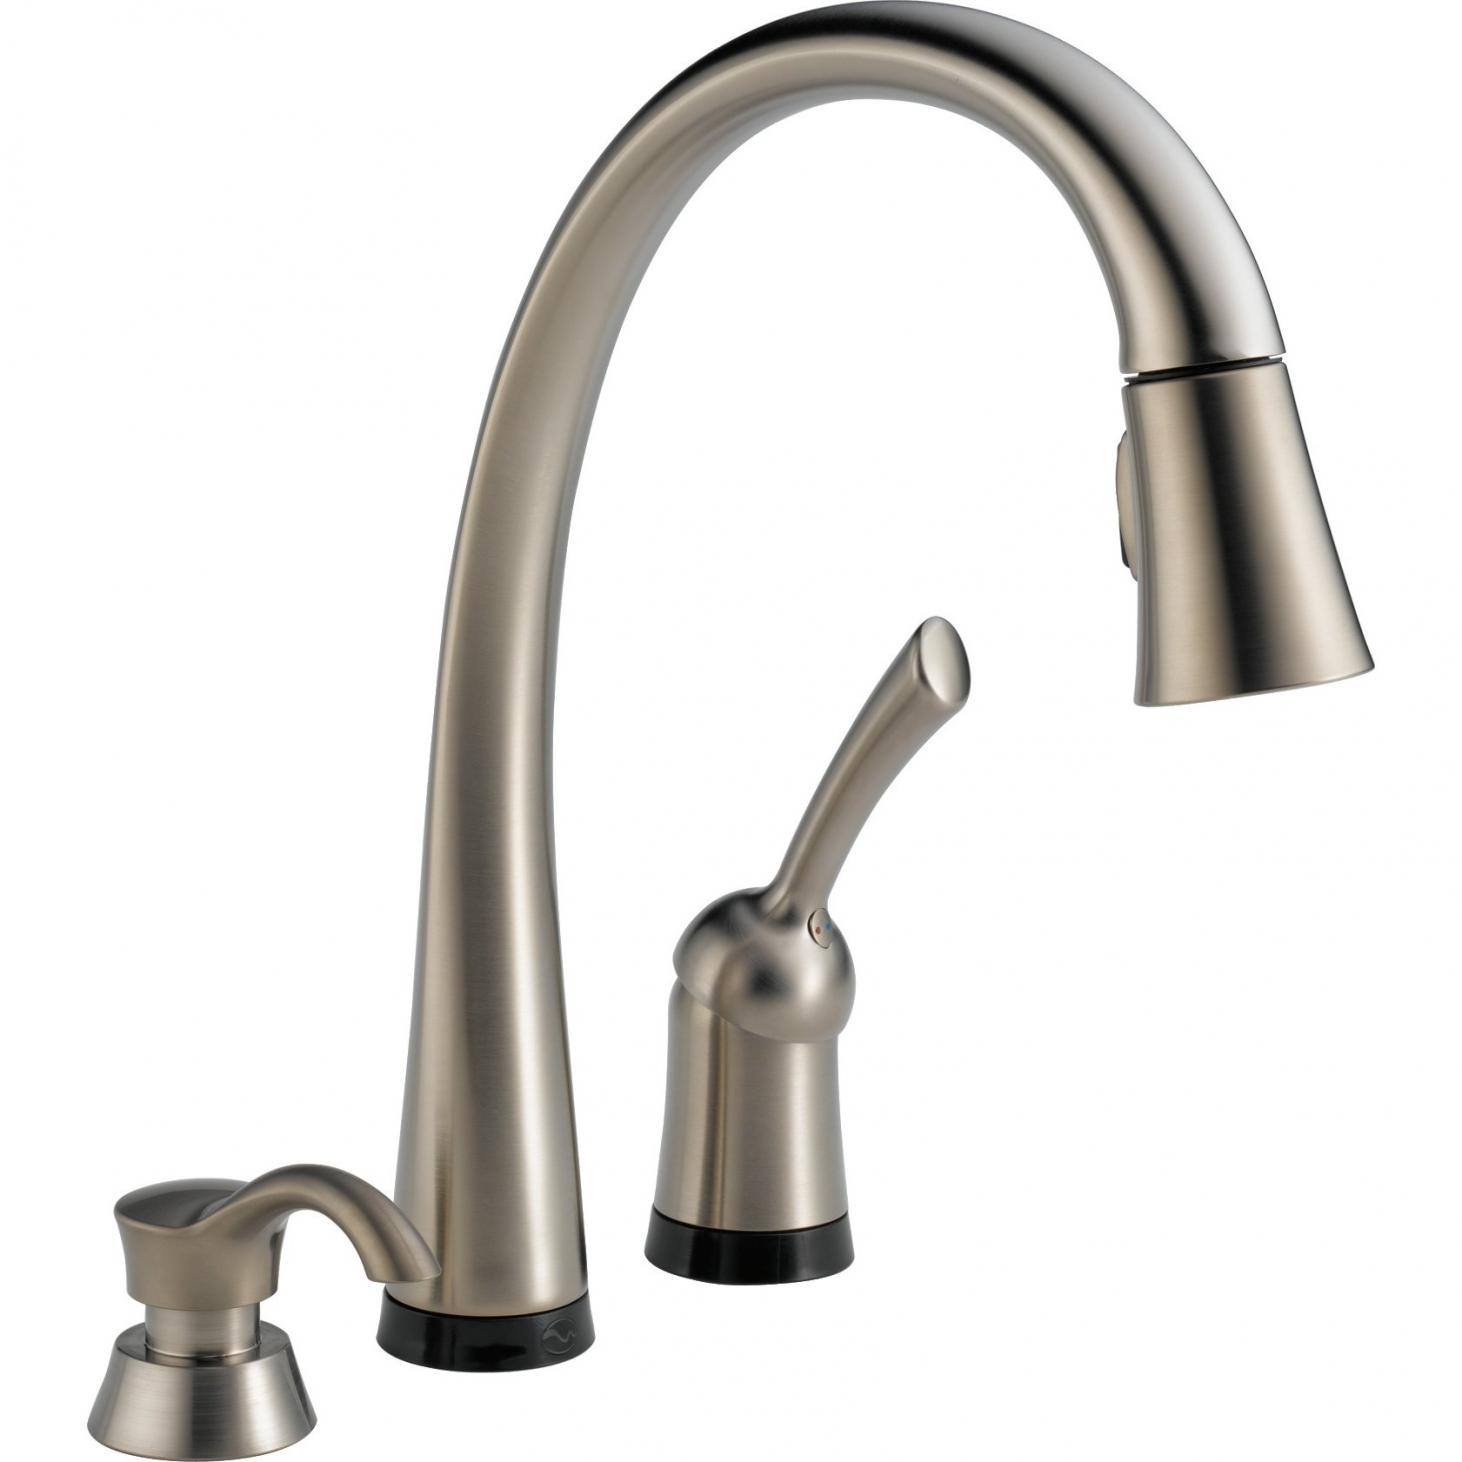 Ideas, delta savile stainless kitchen faucet delta savile stainless kitchen faucet lovely delta savile stainless 1 handle pull down kitchen faucet 1462 x 1462  .